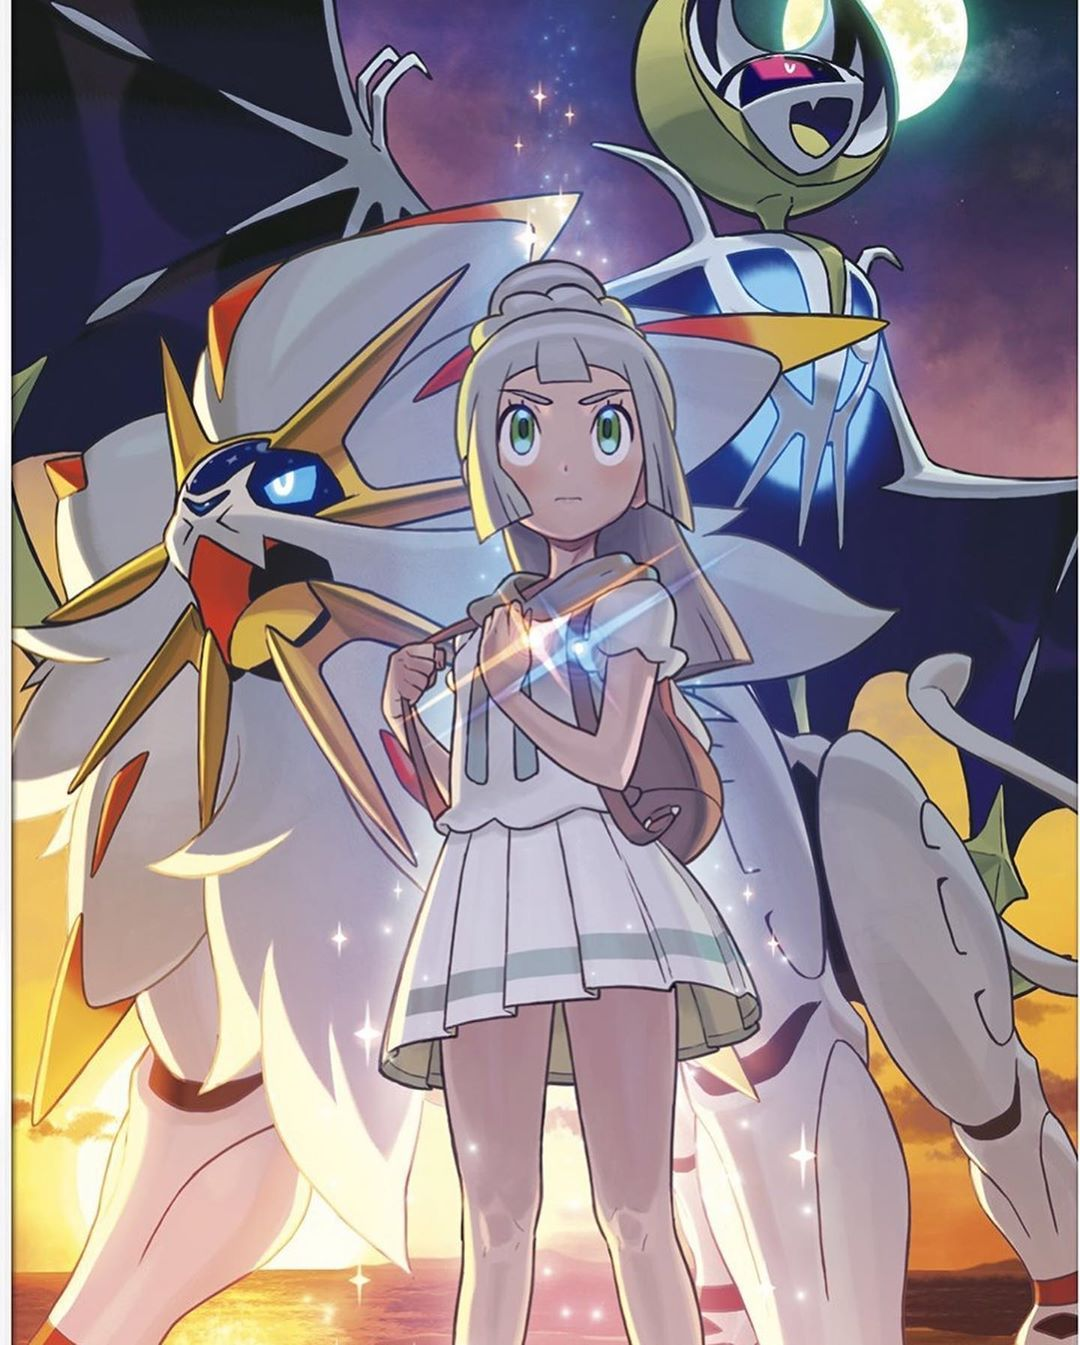 Some Pretty Solid Official Lillie Artwork Official Pokemon Tcg Artwork Pokemon Gladion Pokemon Pokemon Alola